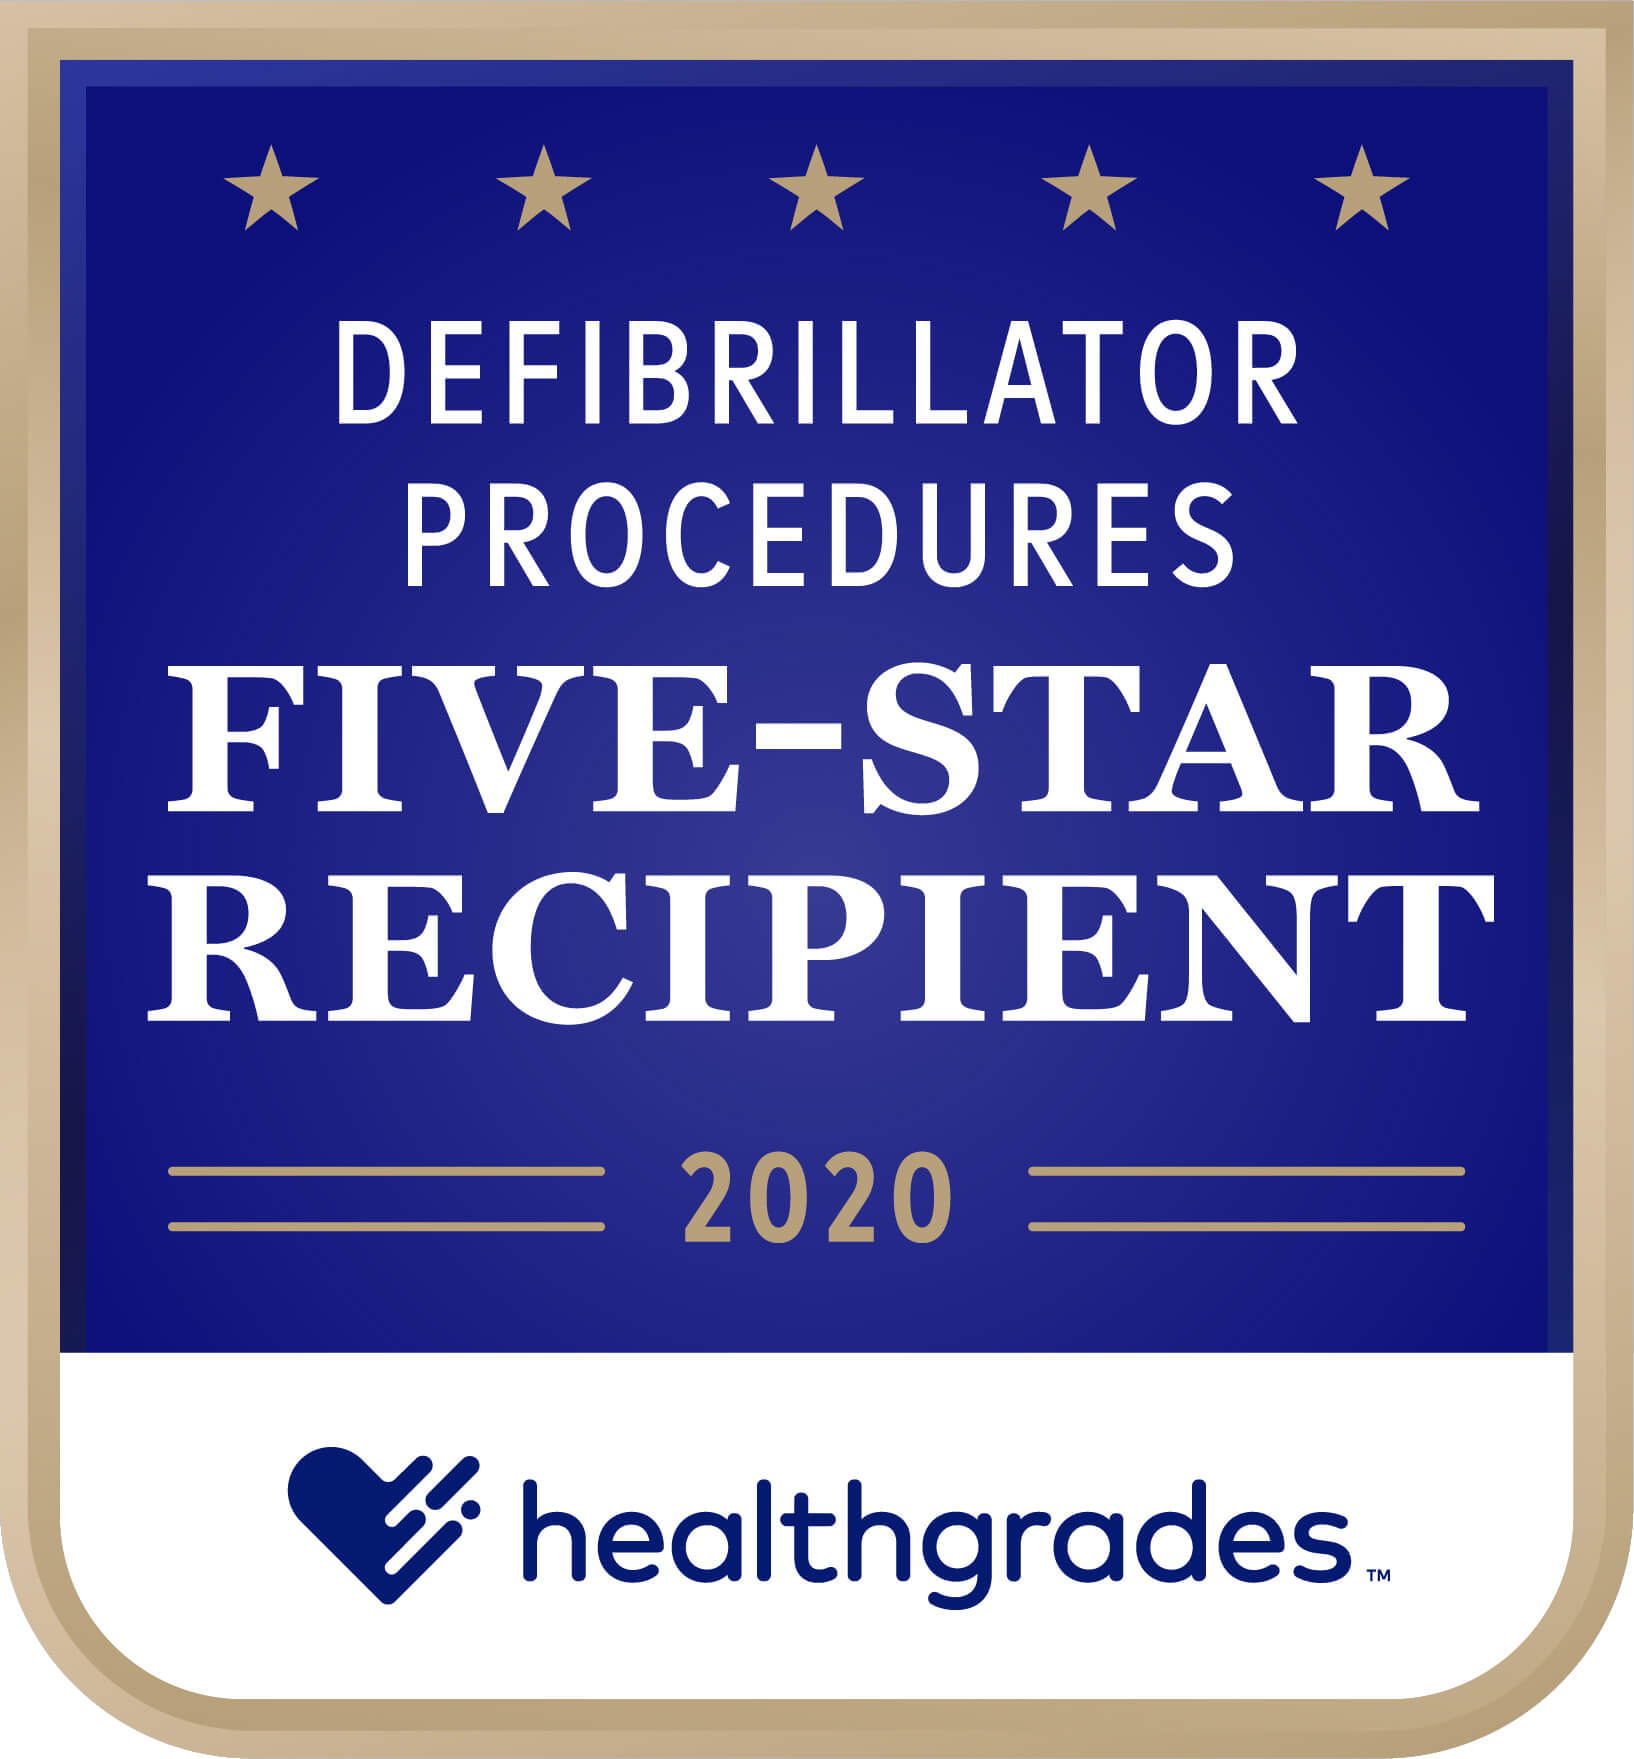 Healthgrades Five-Star Recipient for Defibrillator Procedures Award 2020